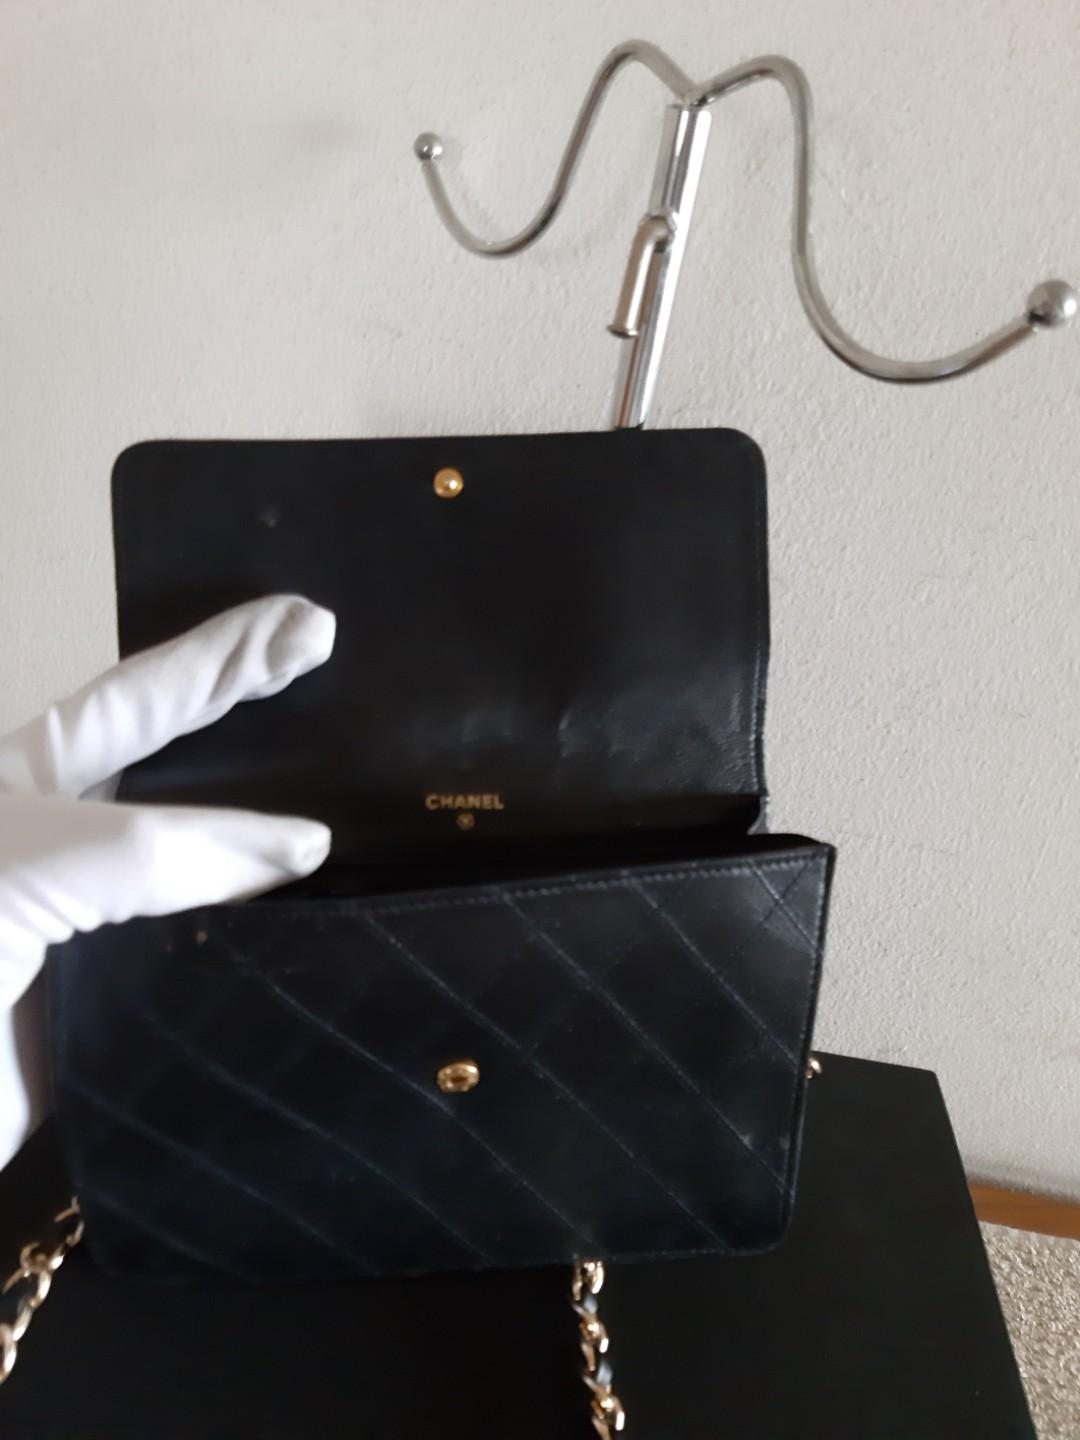 AUTHENTIC CHANEL LAMBSKIN LEATHER CLUTCH VANITY BAG - BLACK COLOUR - CC LOGO , QUILTED DESIGN - VINTAGE - HOLOGRAM STICKER INTACT - INTERIOR IS SEASONED, CAN BE CLEANED/ RESTORED AT BAGSPA - COMES WITH EXTRA HOOKS & LONG CHAIN STRAP FOR SLING / CROSSBODY